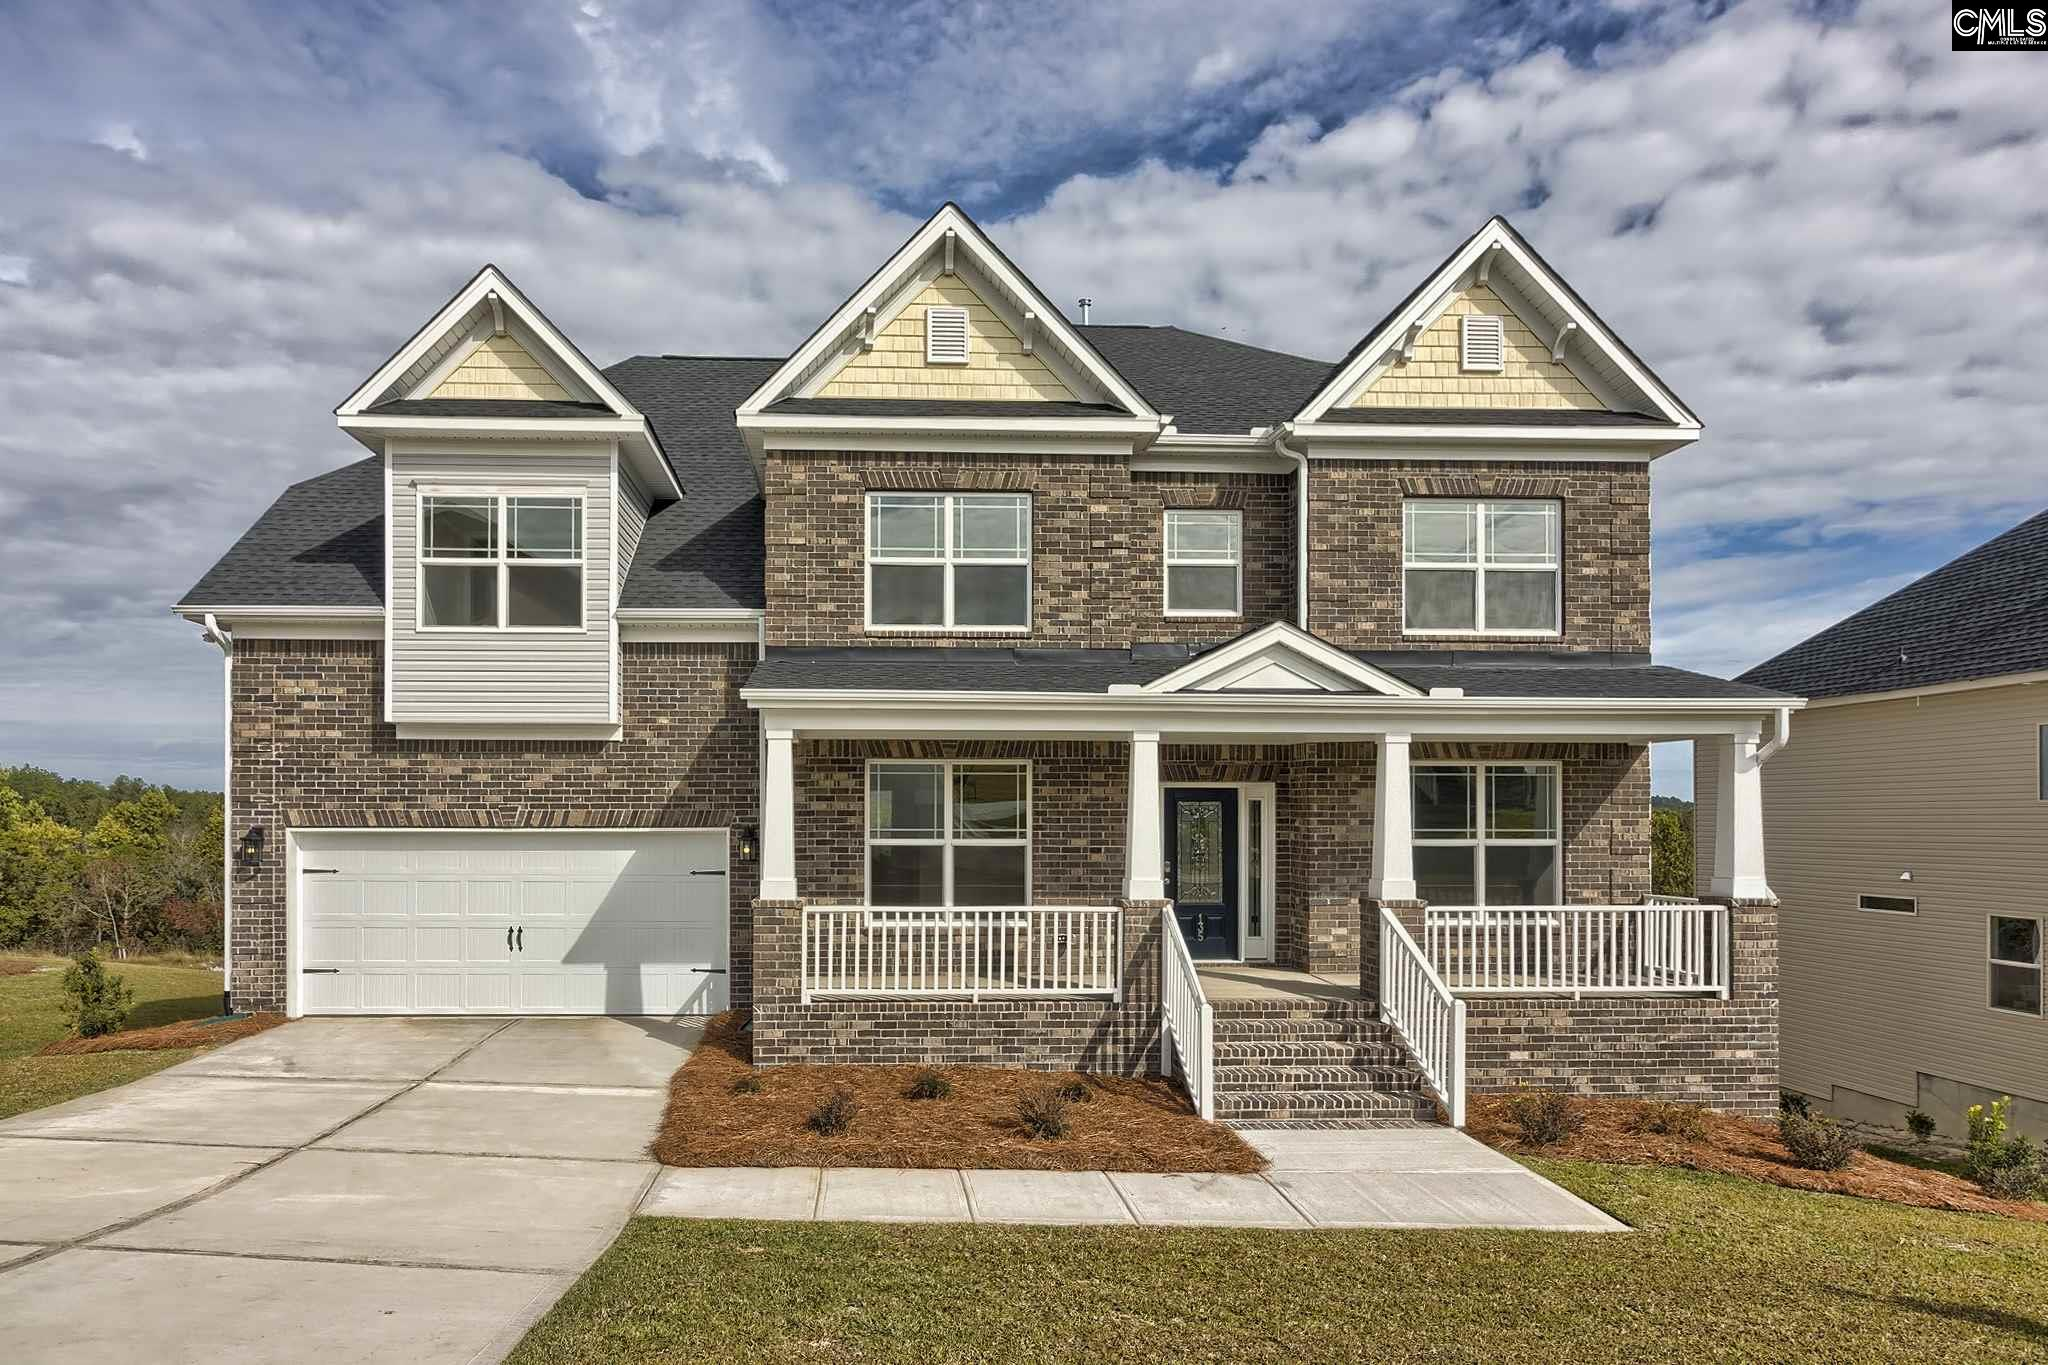 135 Kelsney Ridge Dr Elgin, SC 29045